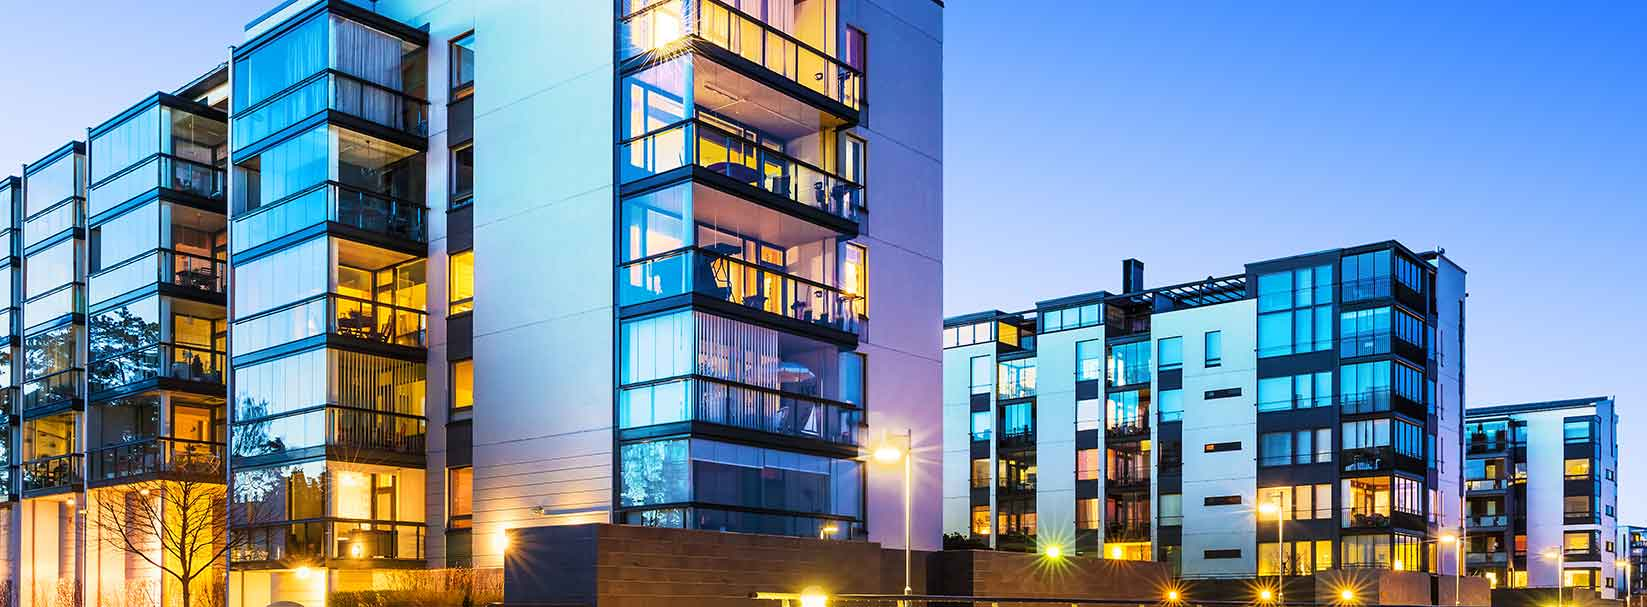 More apartments needed at the right price to meet demand in Christchurch